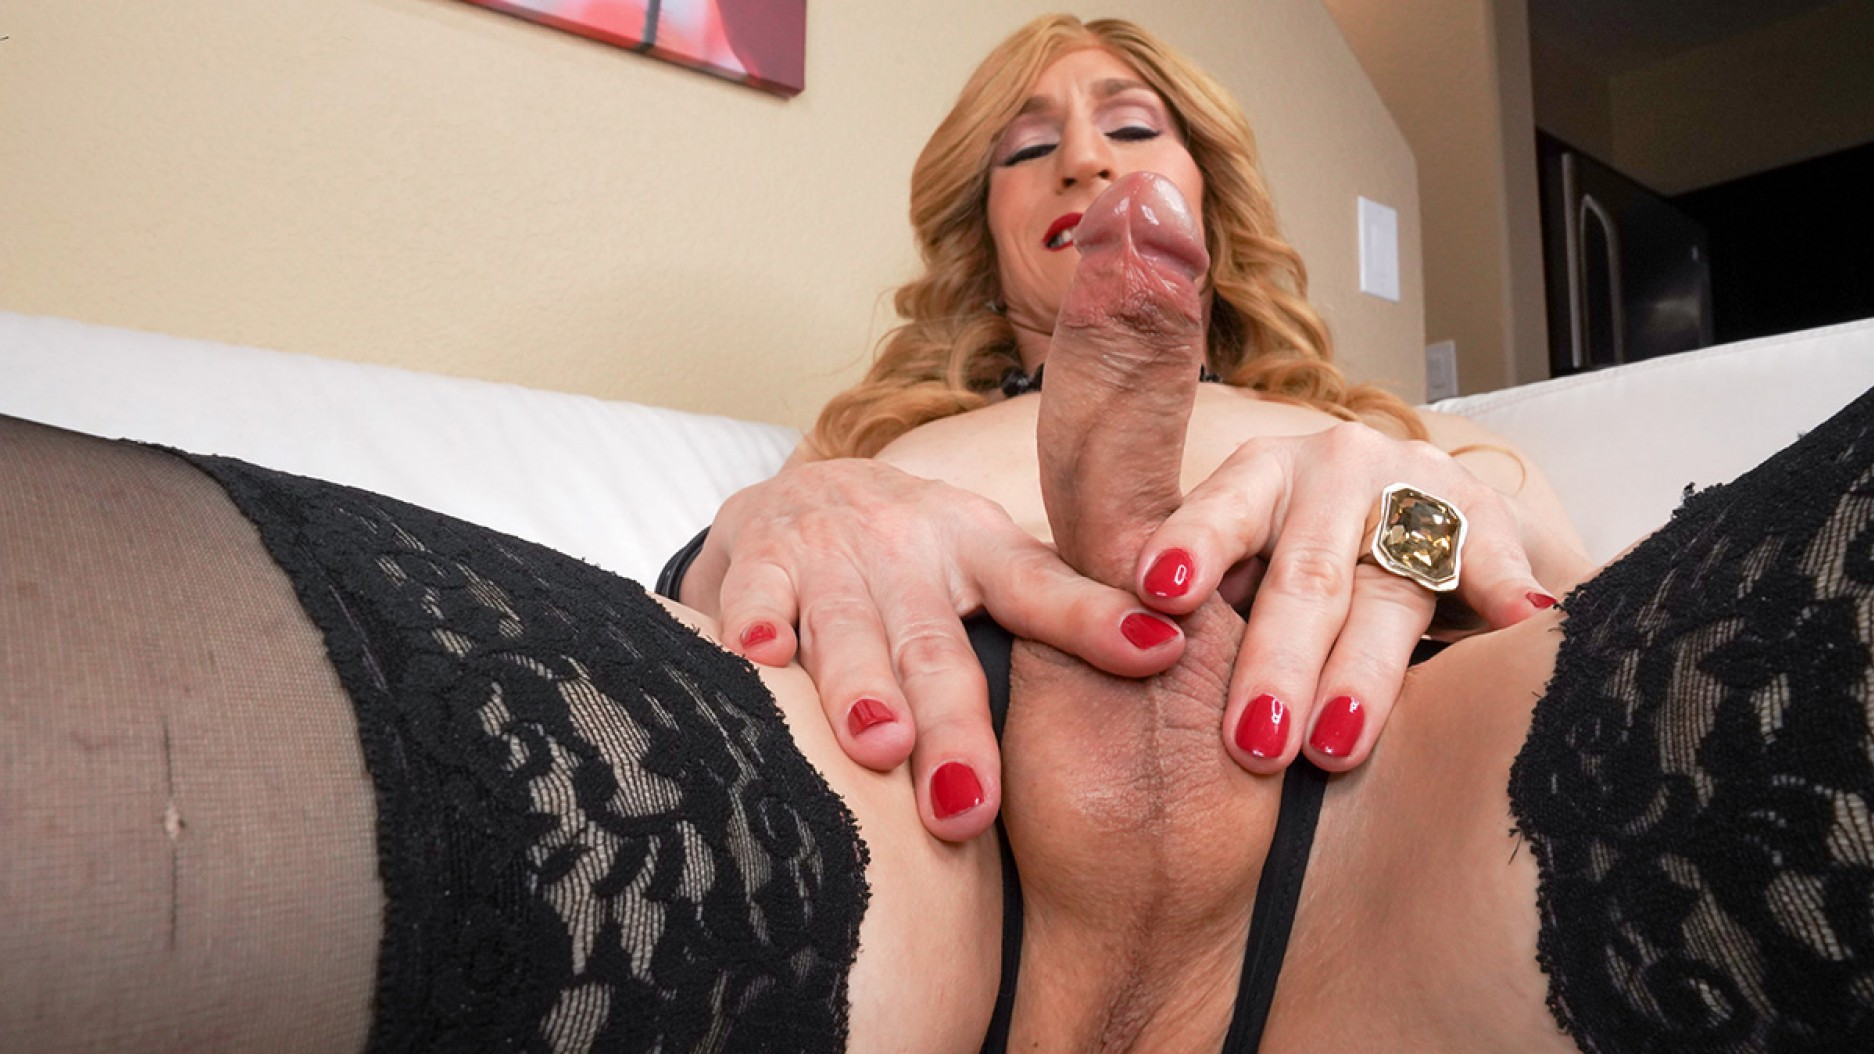 TGirl40 Bodacious Kacy Strokes On The Couch!  Shemale XXX WEB-DL Groobynetwork